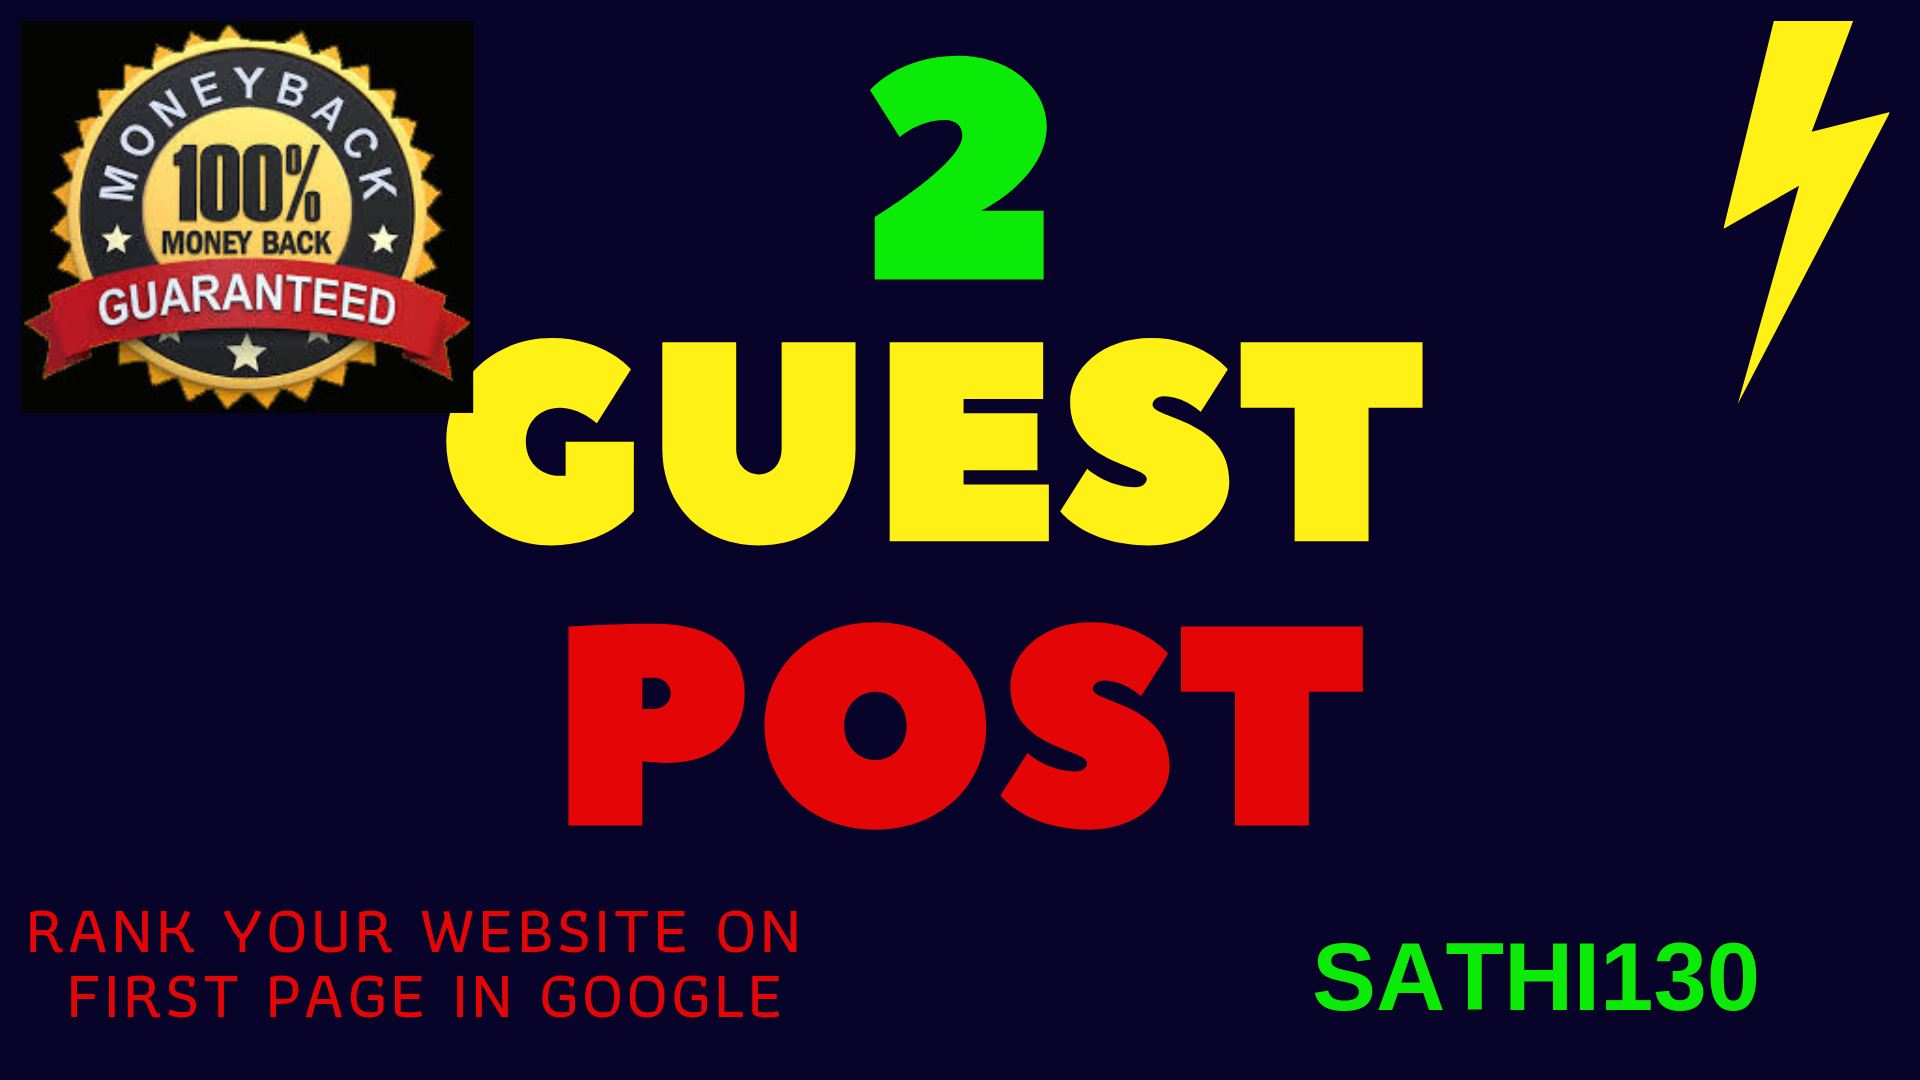 Write and Submit your 2 guest posts to kinja behance in the most popular websites